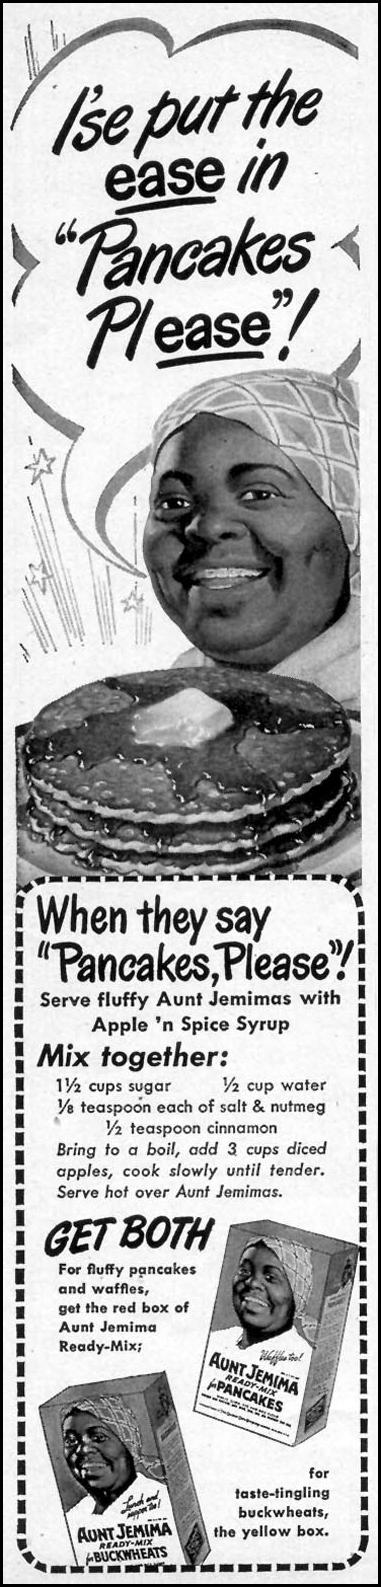 AUNT JEMIMA READY-MIX PANCAKES WOMAN'S DAY 10/01/1948 p. 130